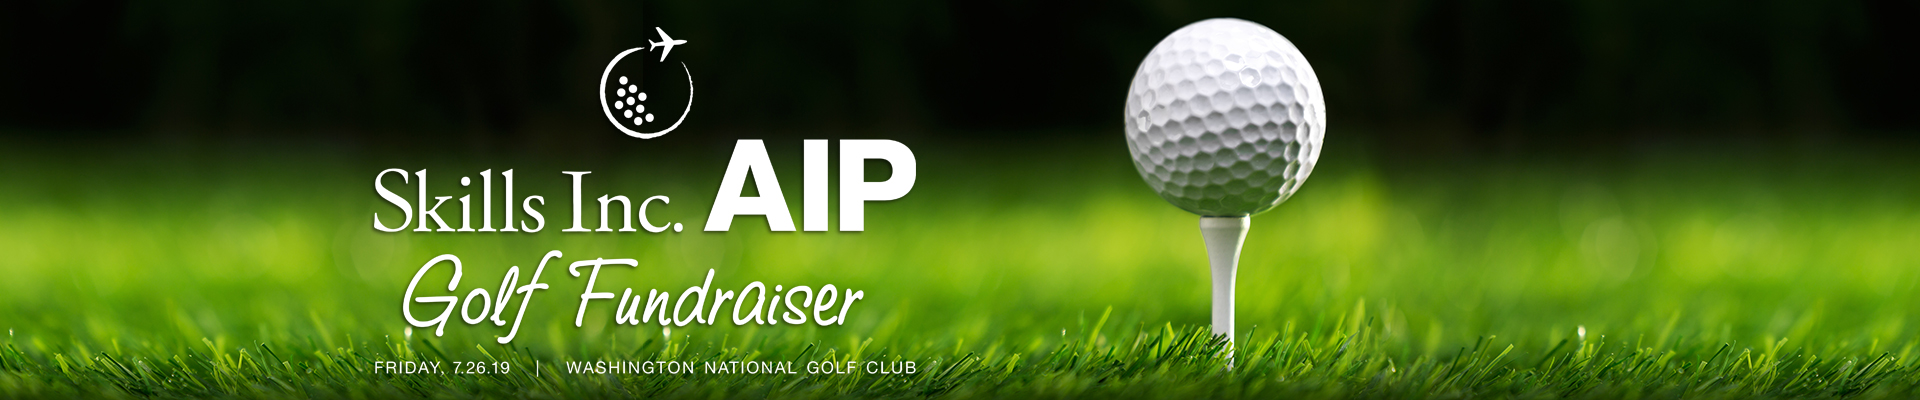 Skills Inc. AIP Golf Fundraiser